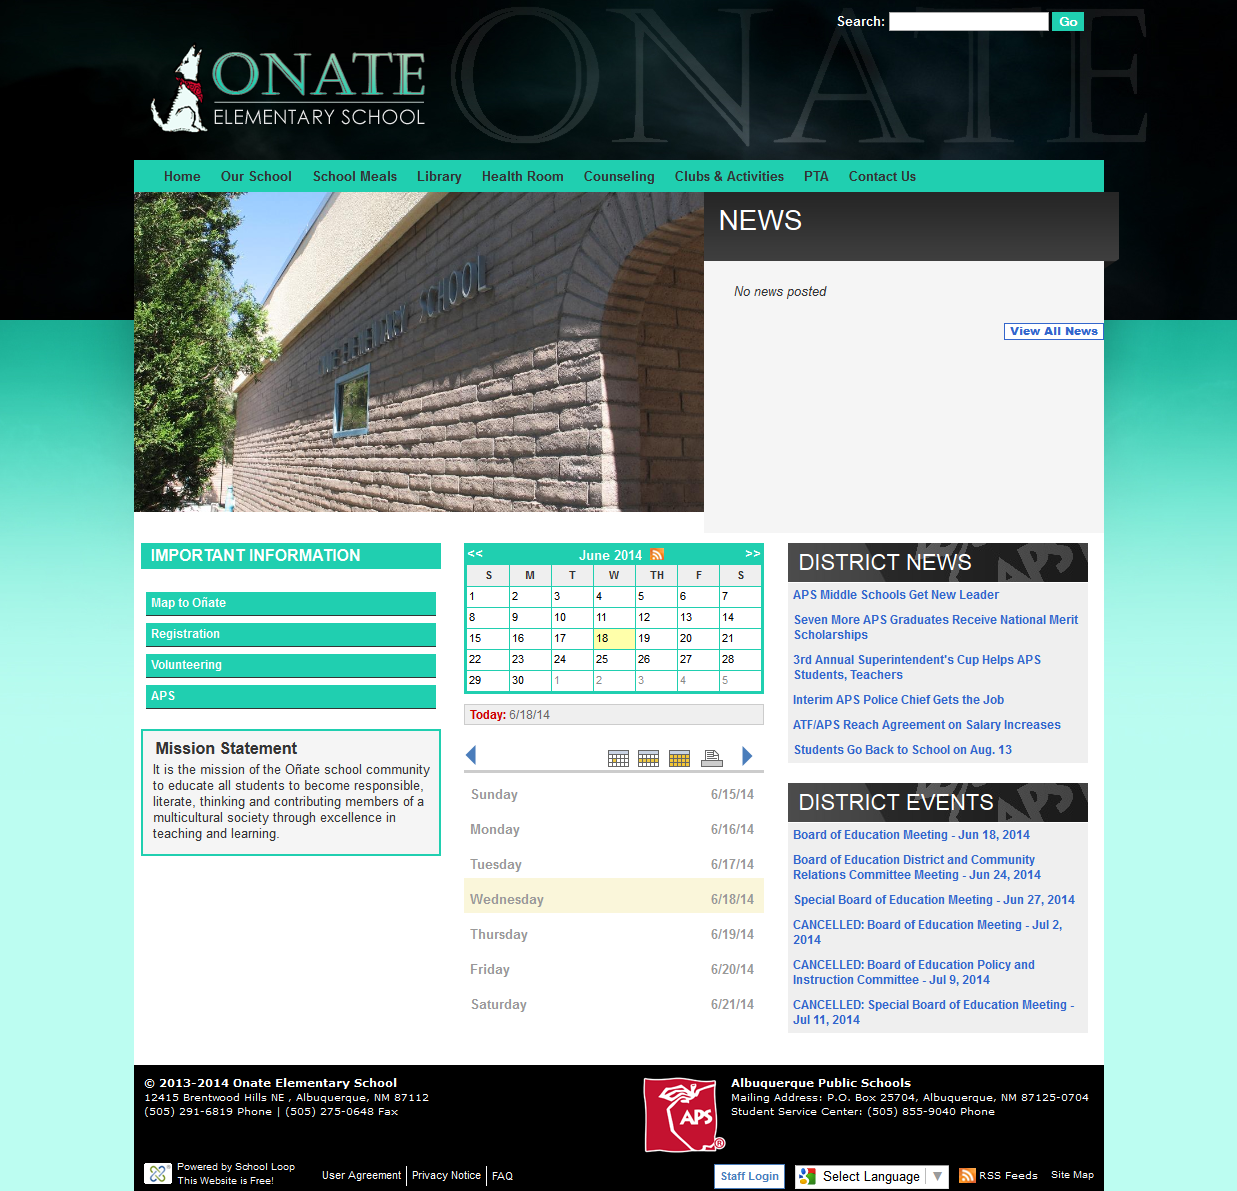 Oñate Website Launched